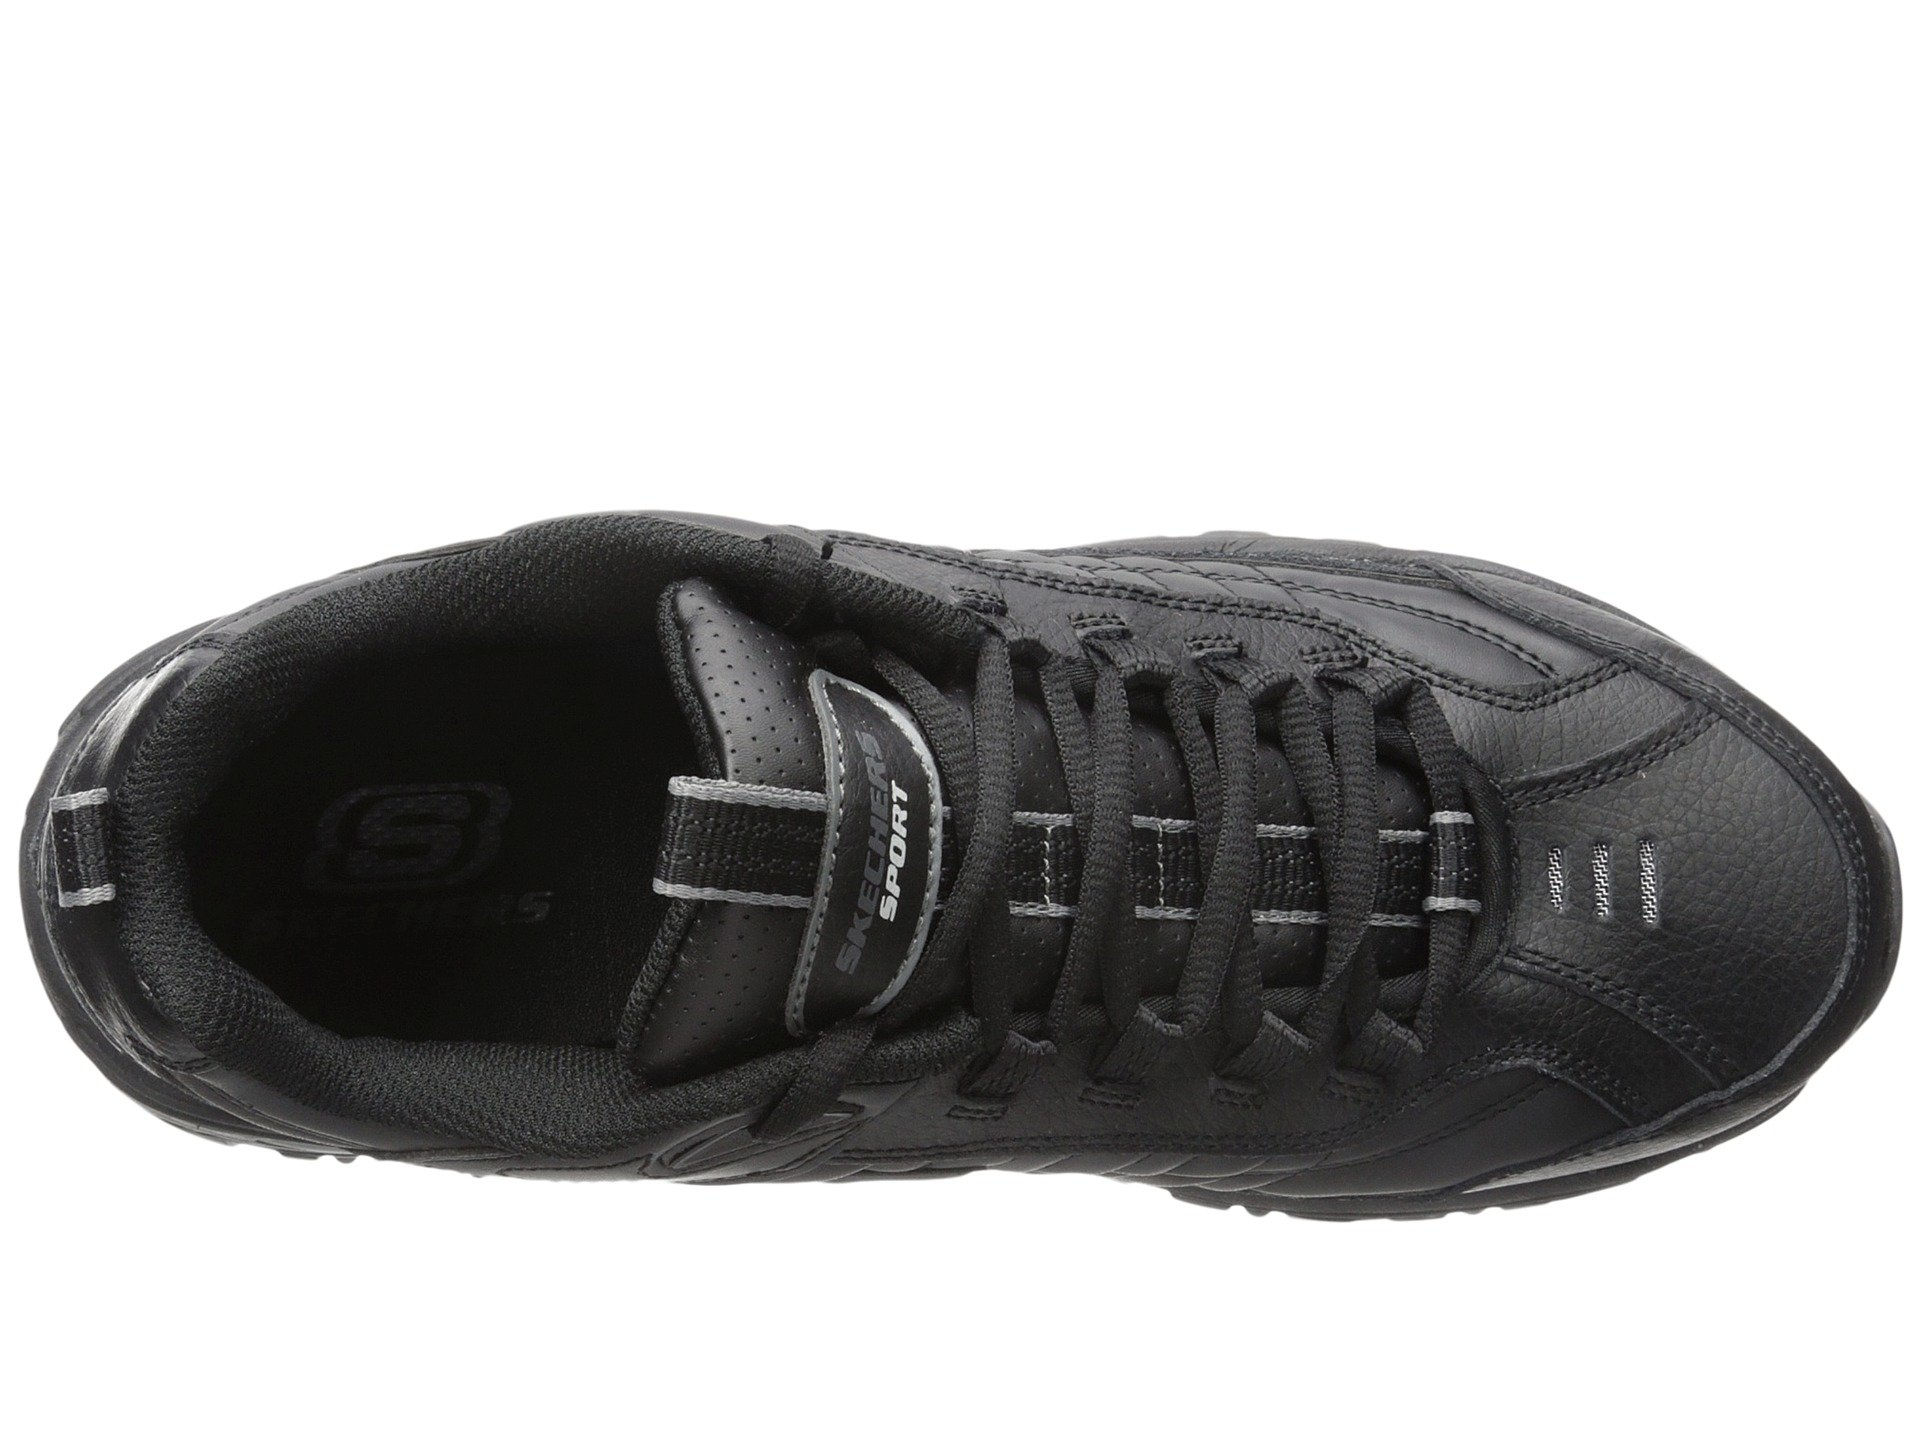 Skechers-Energy-Afterburn-amp-Downforce-Men-Casual-Sneaker-Athletic-Shoe-6-Colors